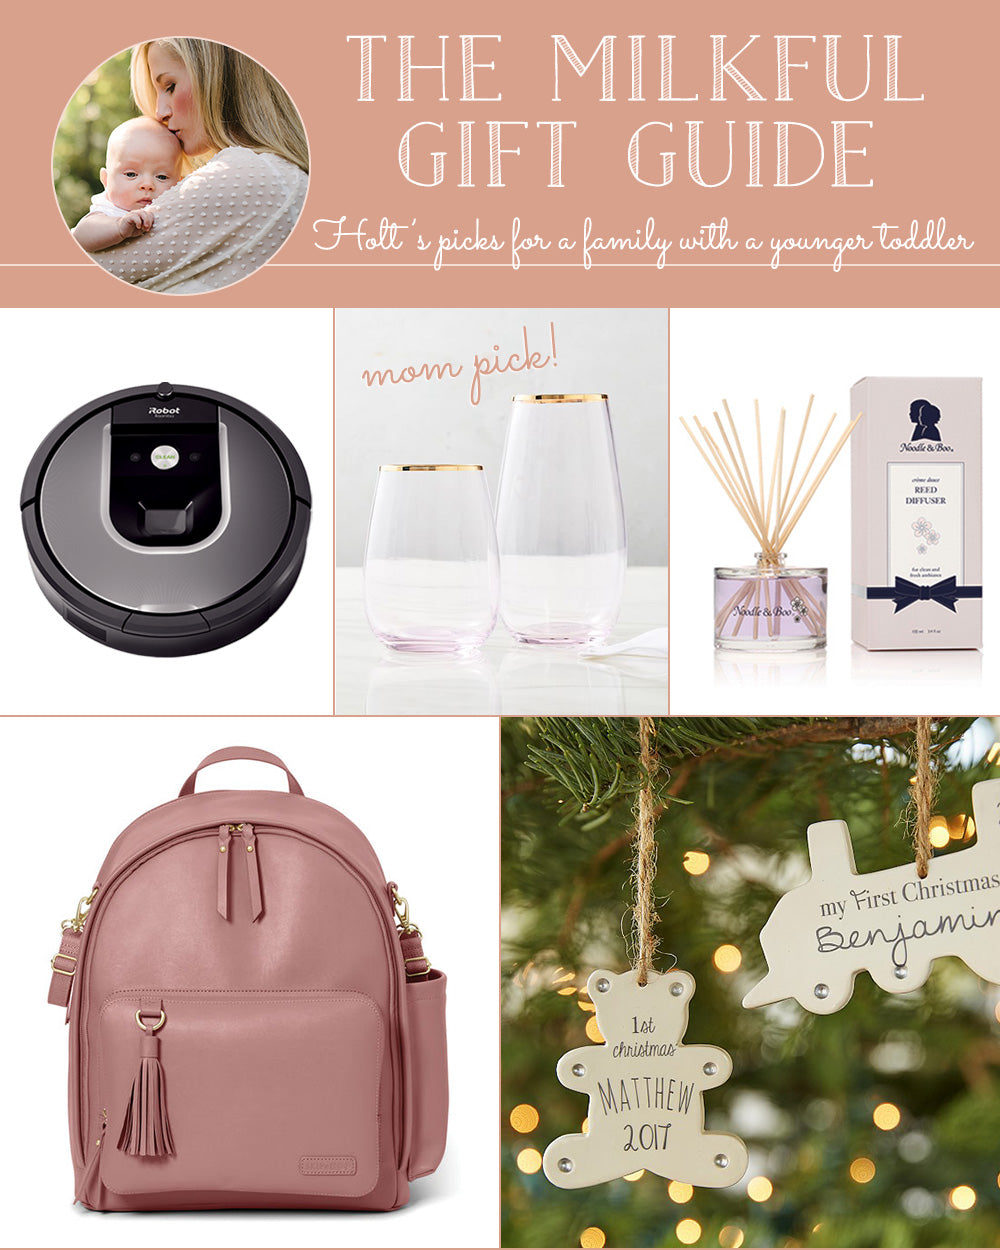 The Milkful Gift Guide for a Family with a Younger Toddler